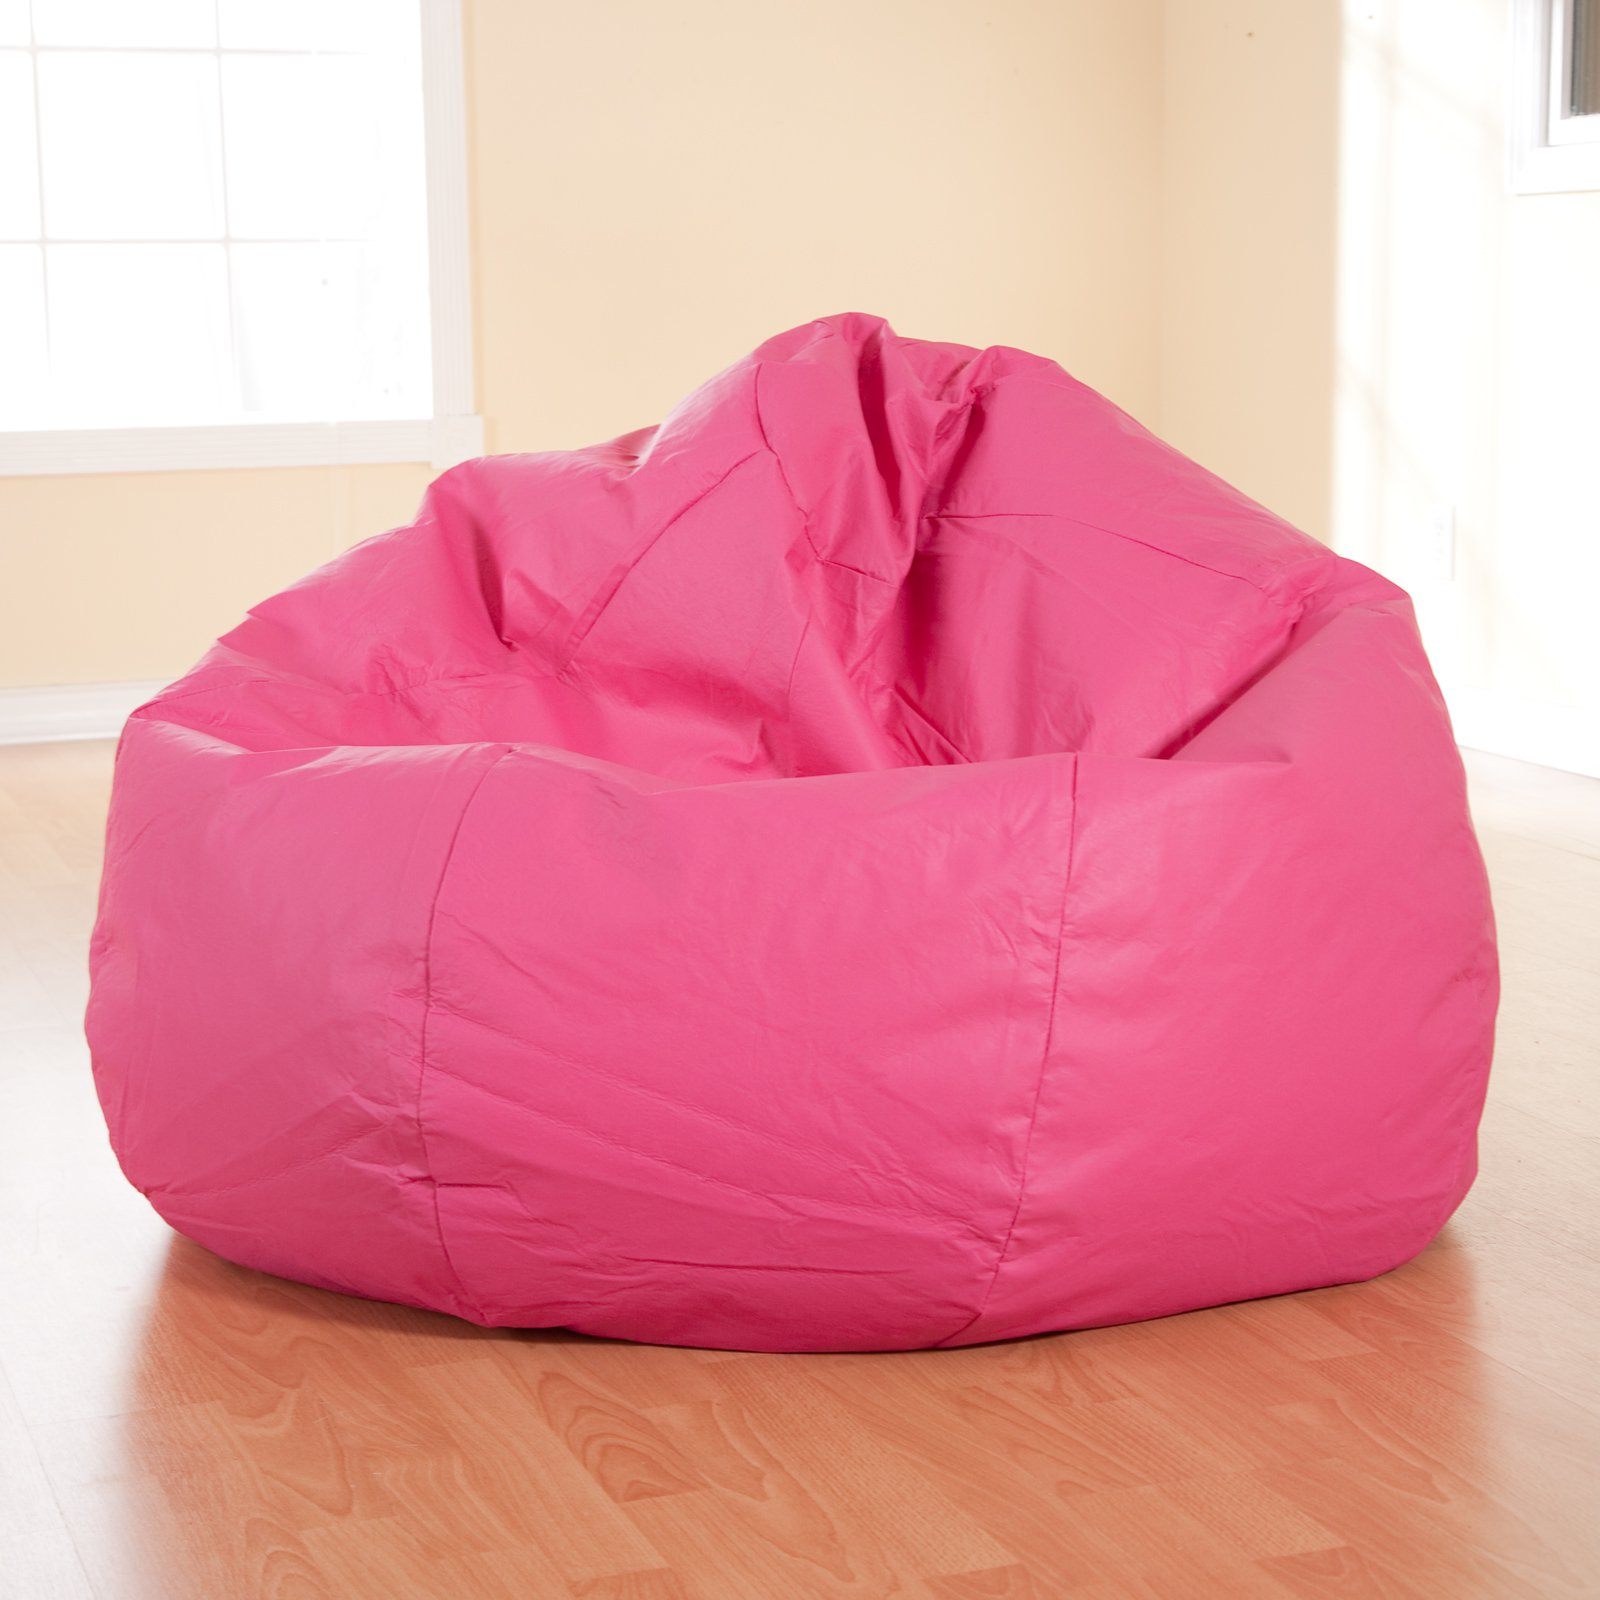 pink sofa lsakura class shot sakura interior gold chair bag butterfly bean bags